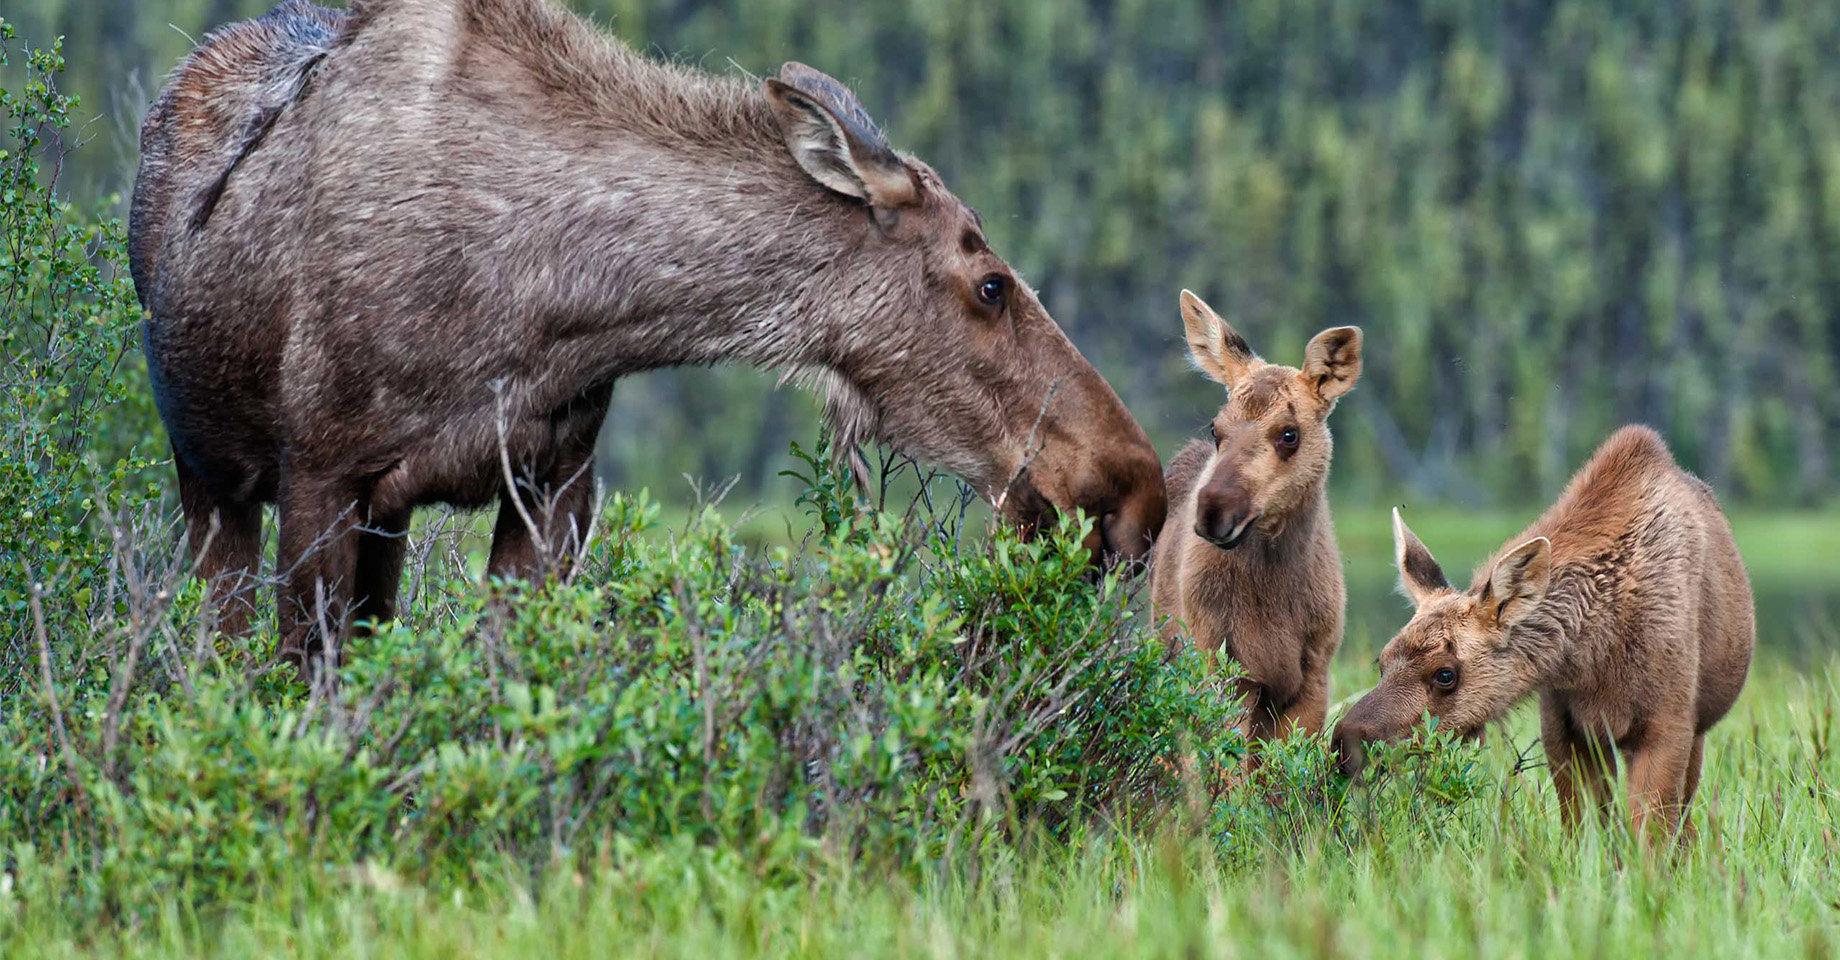 An adult moose with two young calves.